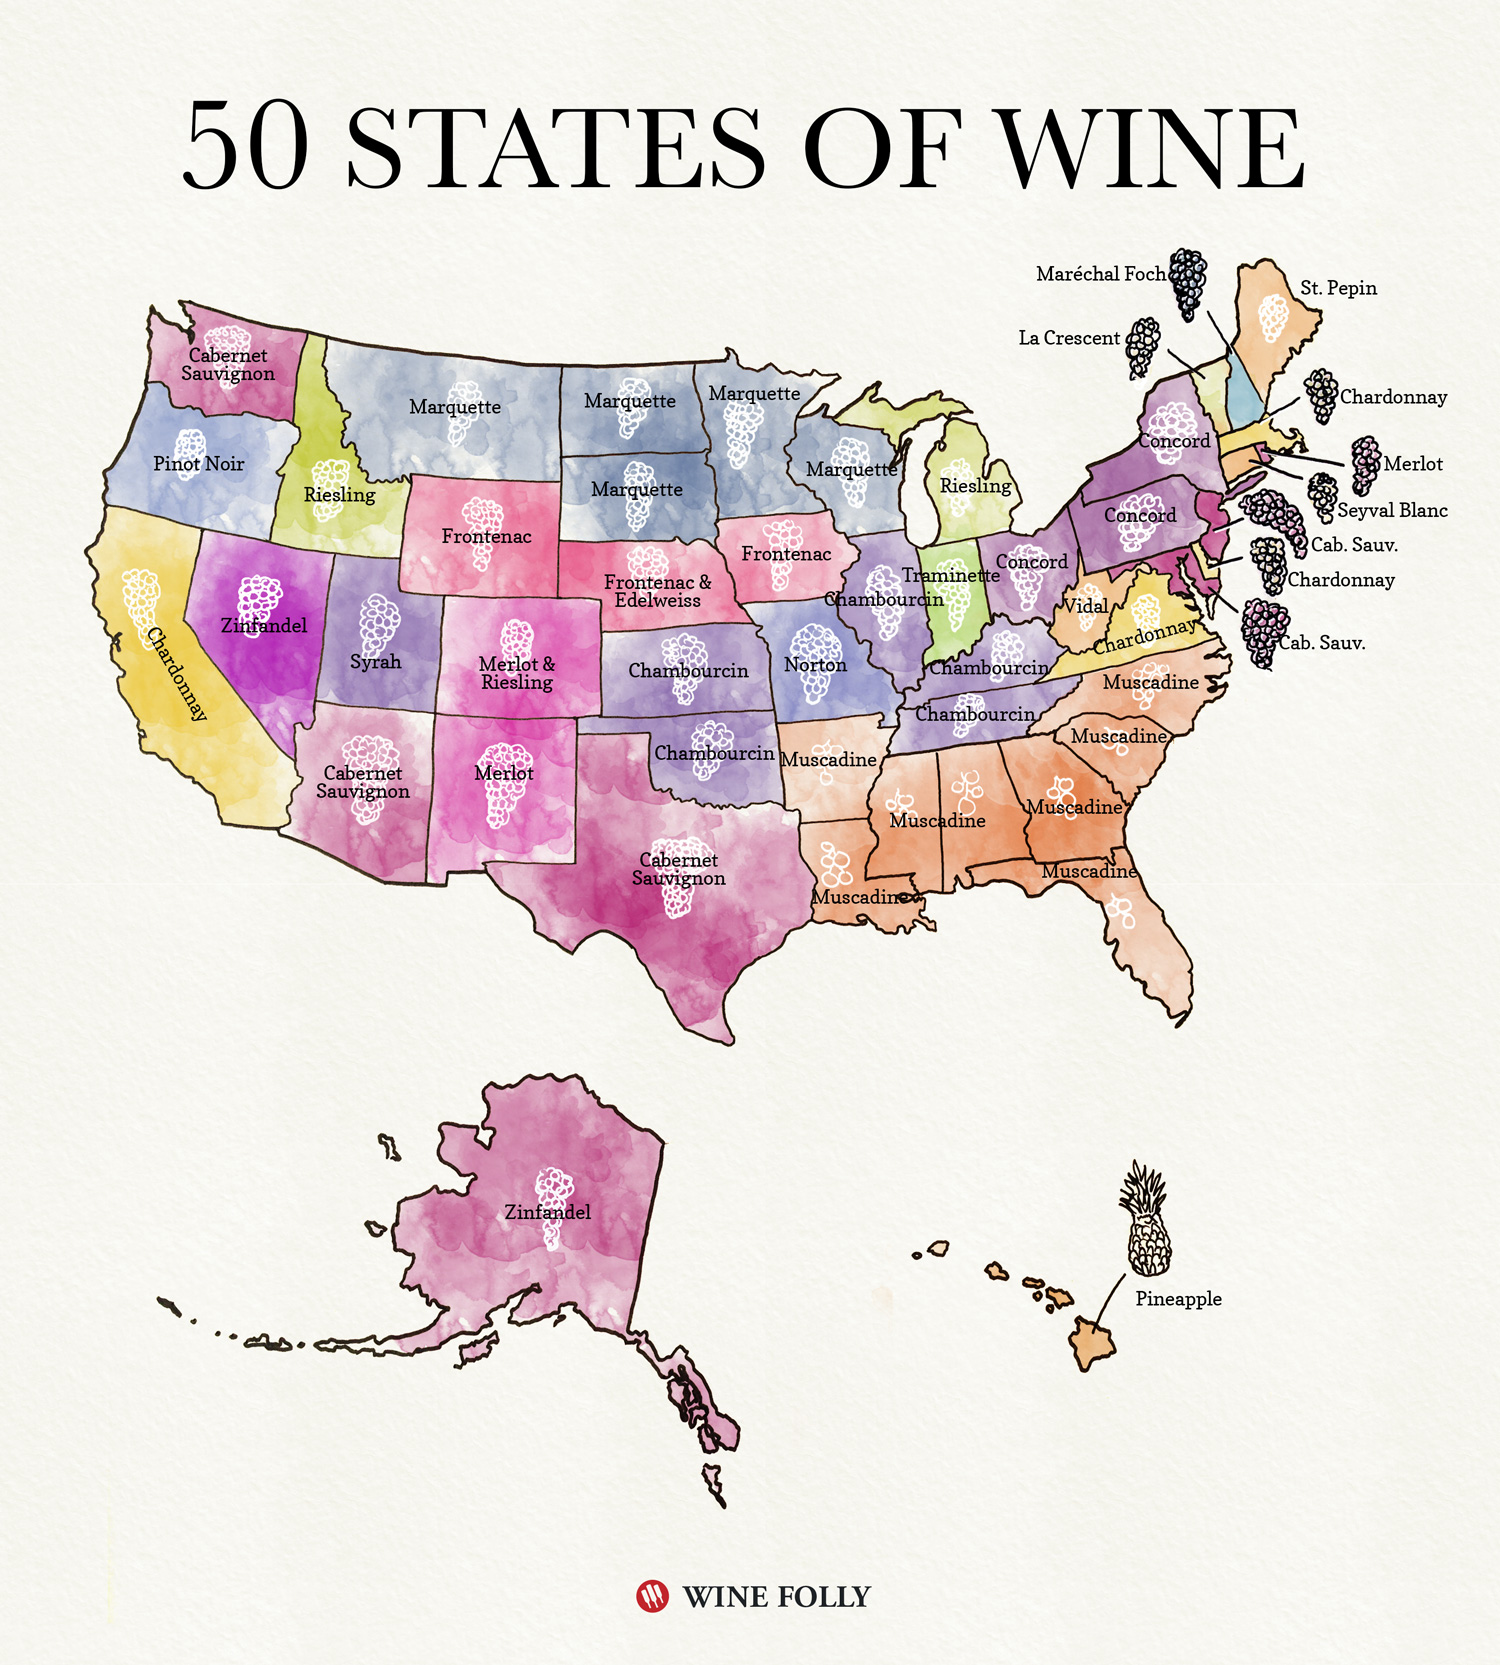 50 States of Wine (Map) | Wine Folly on placer county wineries map, auburn ca trail map, brandywine wine trail map, auburn calif wineries map, leelanau peninsula wineries map, dobson nc map, rattlesnake hills wineries map, nevada wineries map, auburn ca wineries map, texas hill country wineries map, north carolina wineries map, washington wineries map,